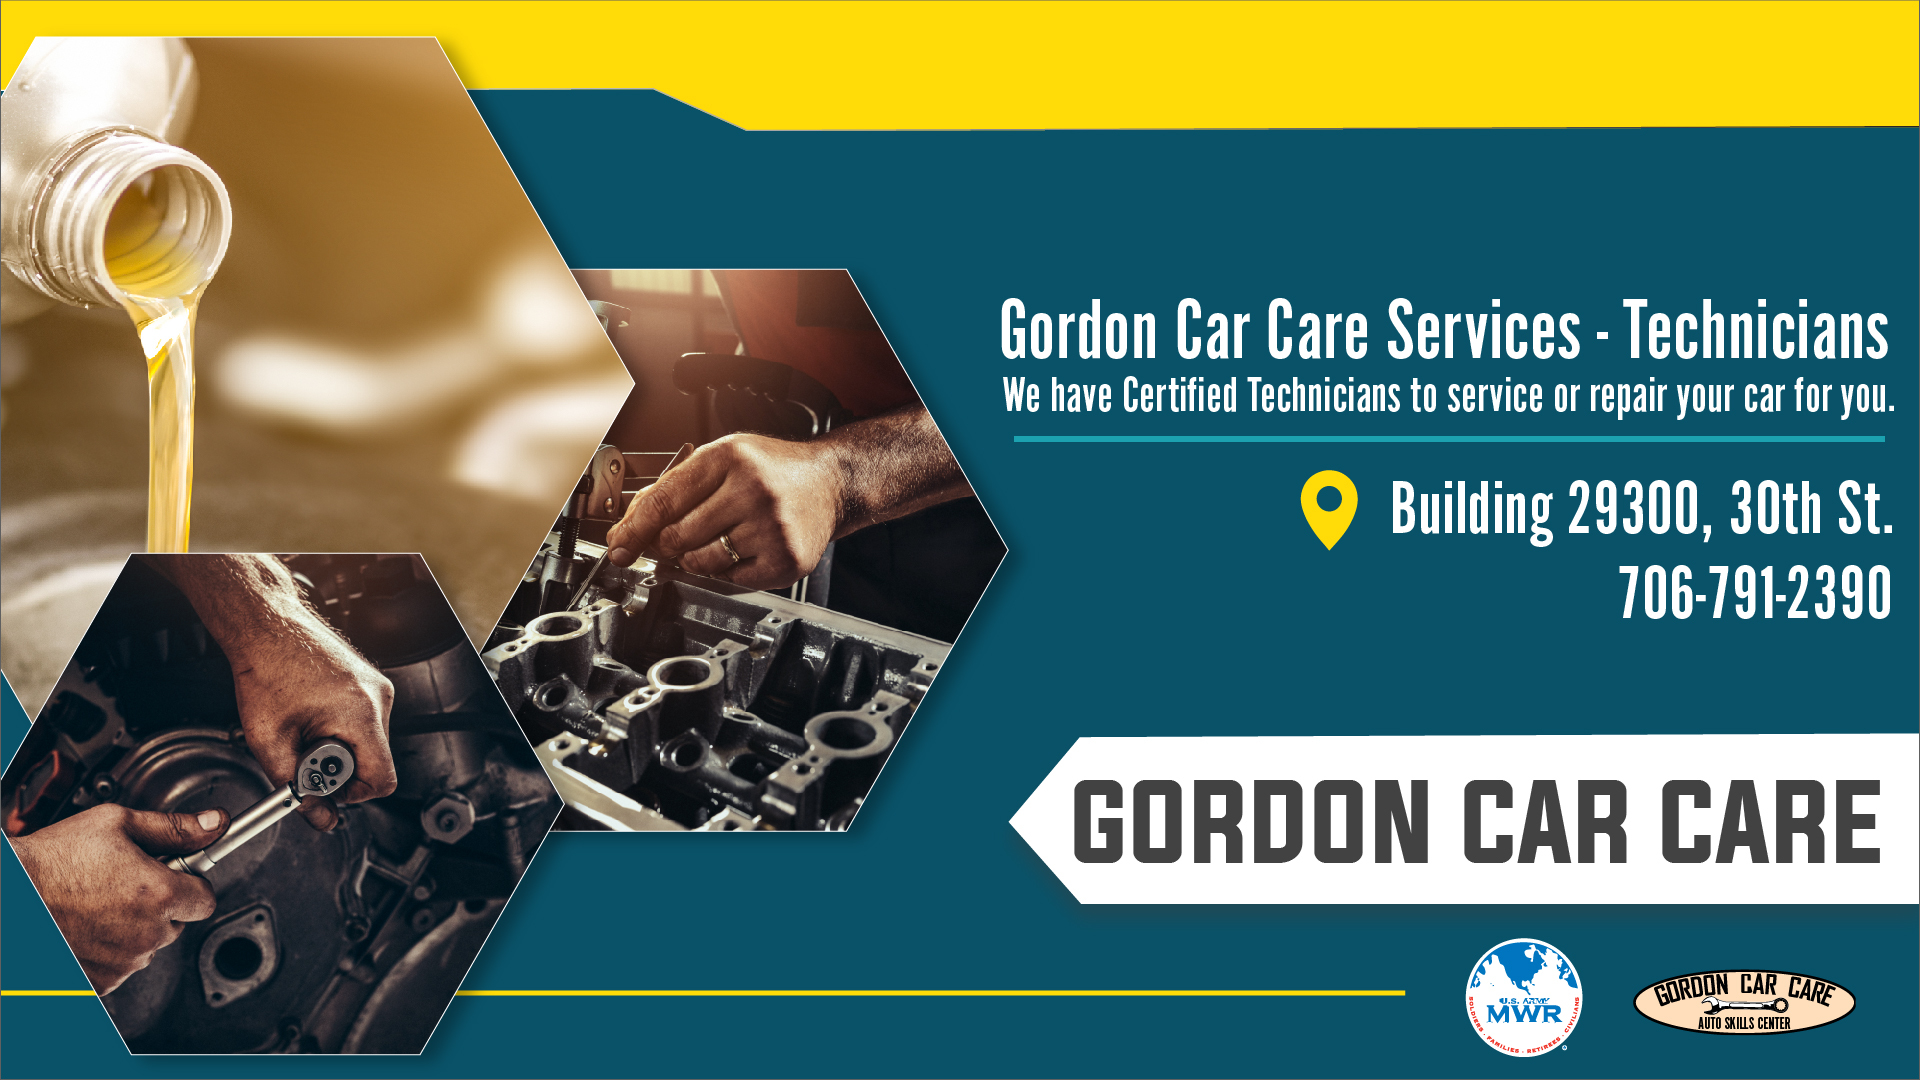 Gordon Car Care Services - Technicians